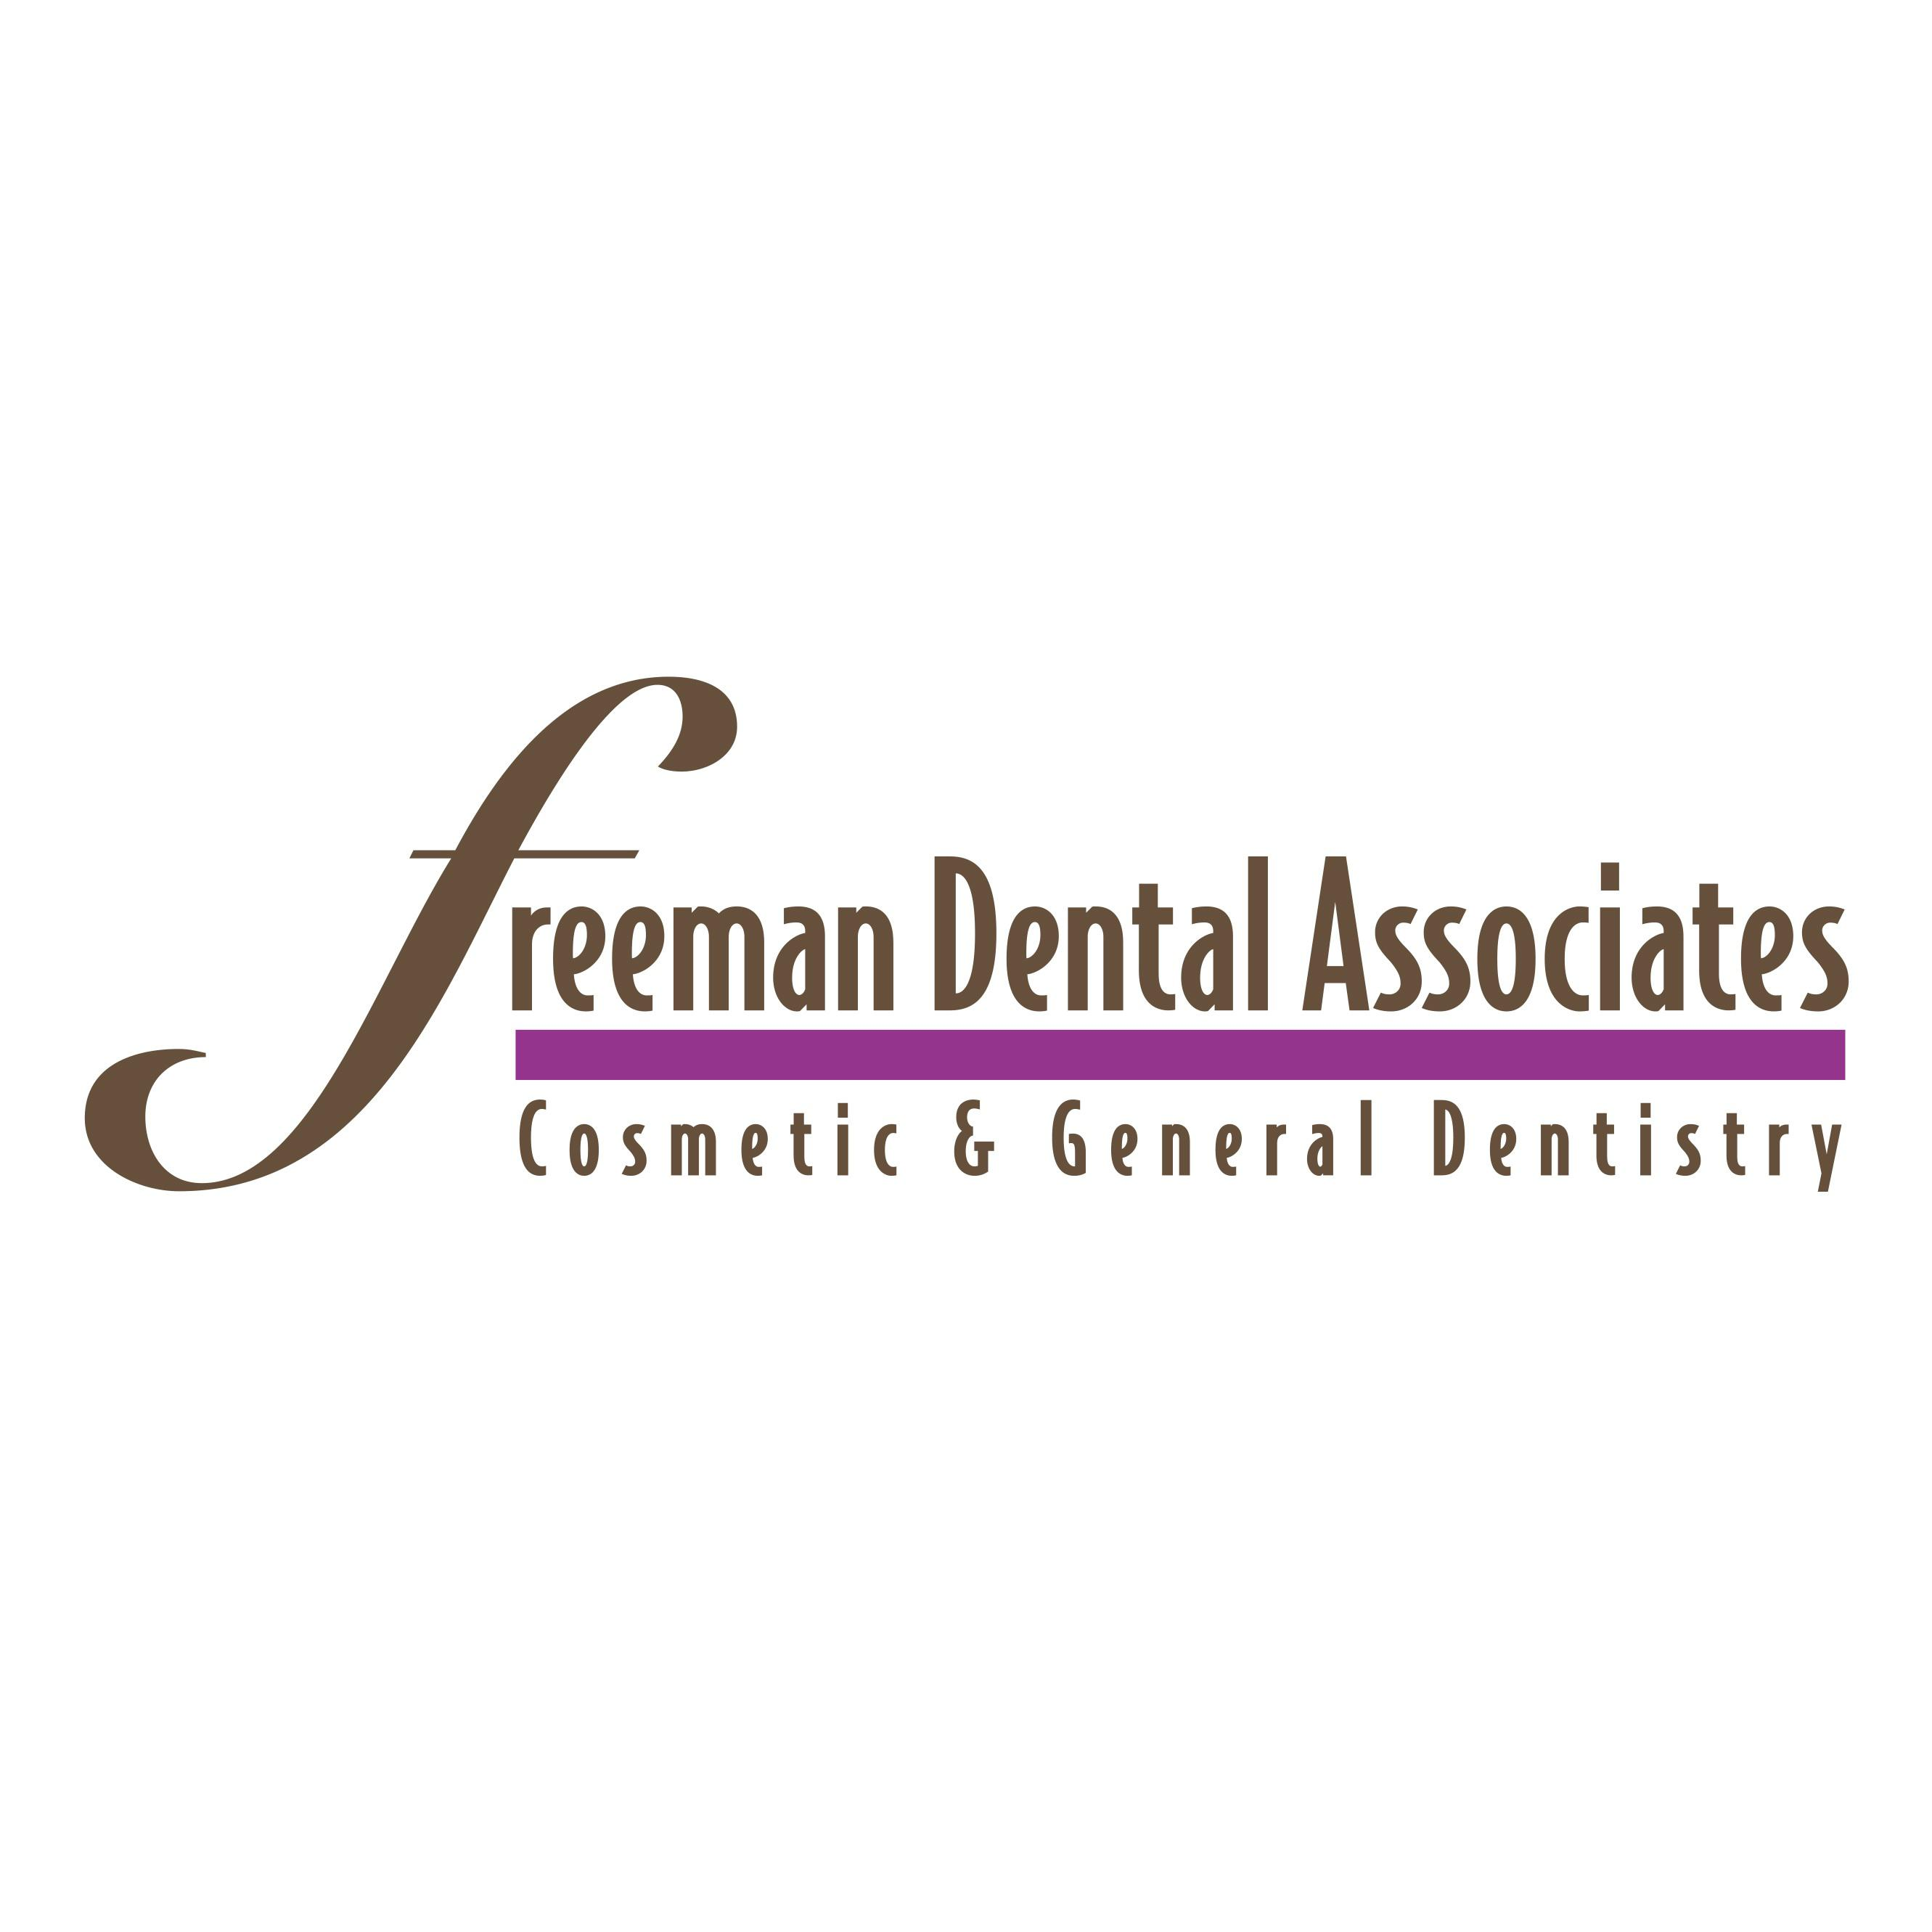 Freeman Dental Associates